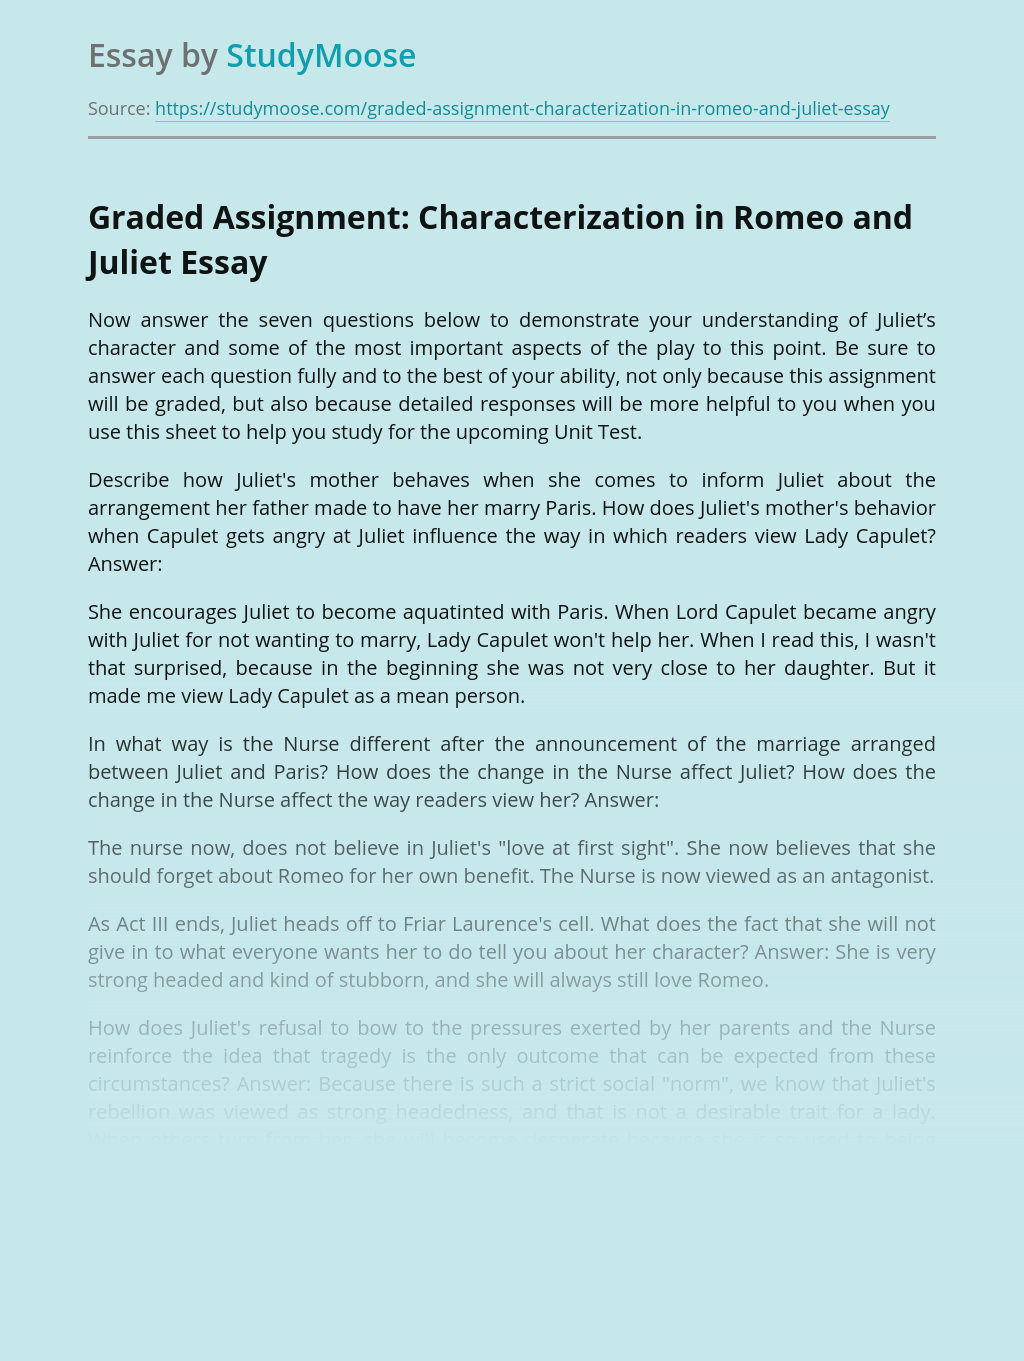 Graded Assignment: Characterization in Romeo and Juliet